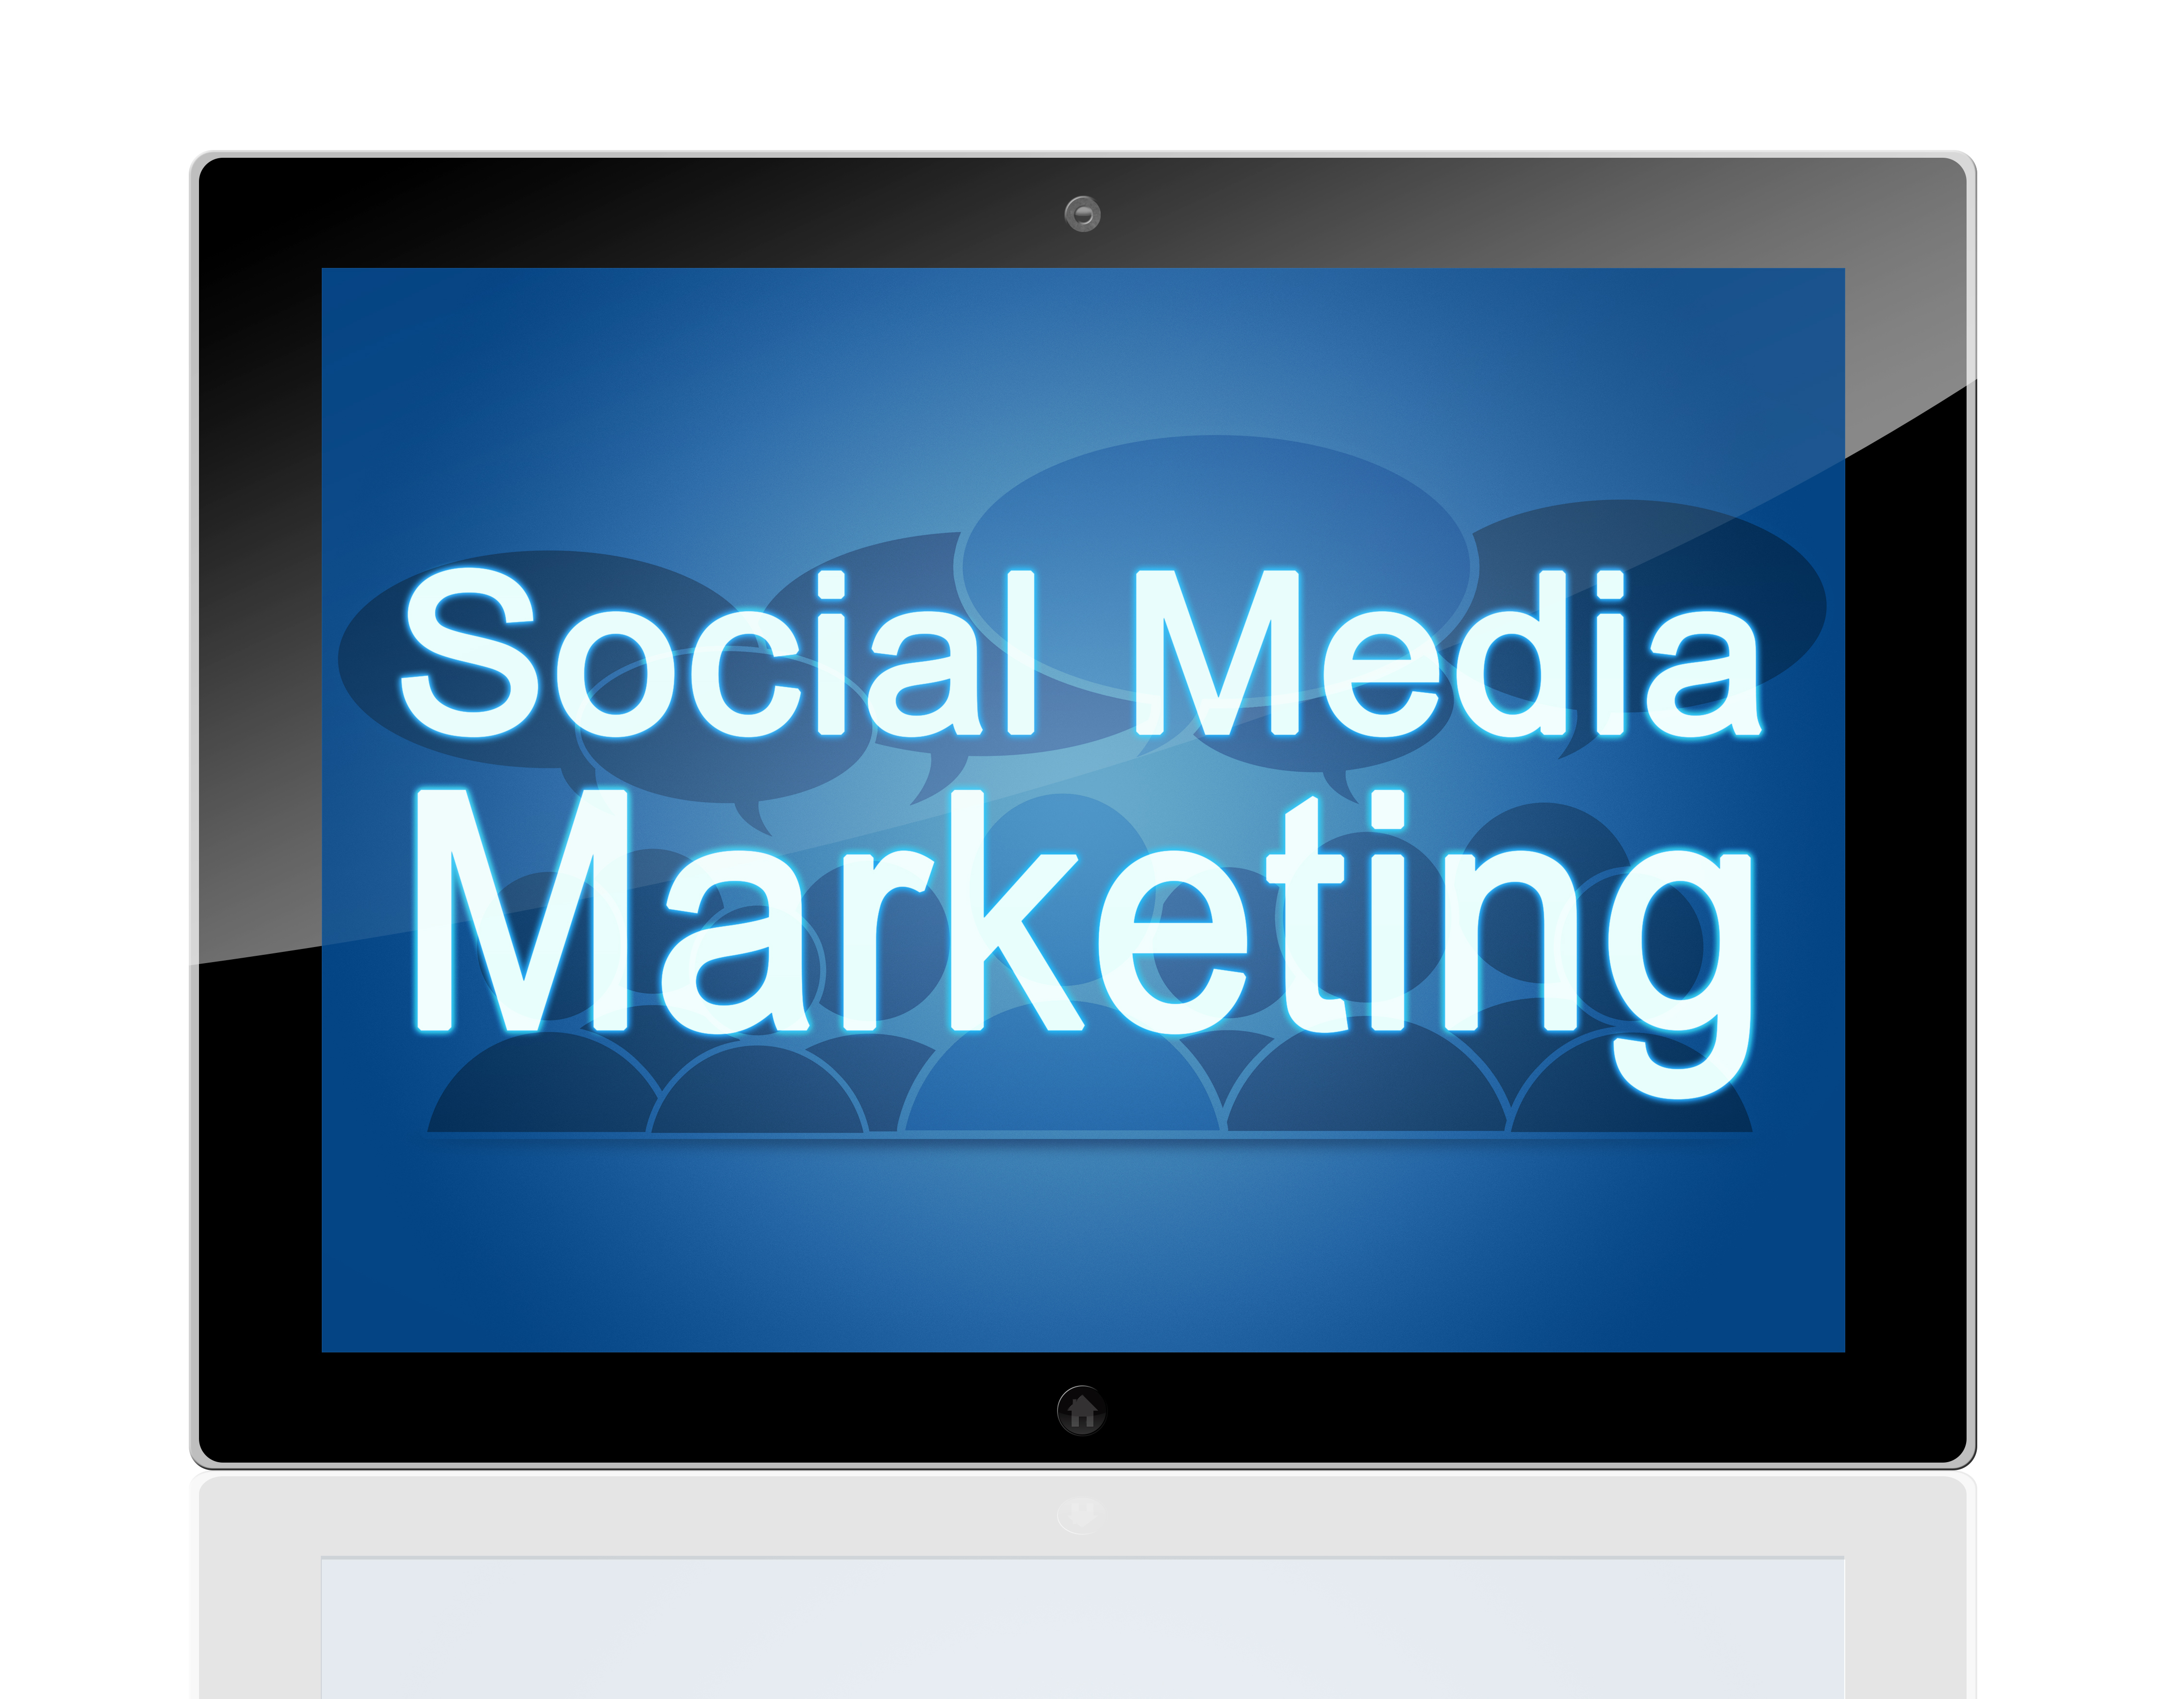 Richard Vanderhurst - The Things You Need To Know About Facebook Marketing